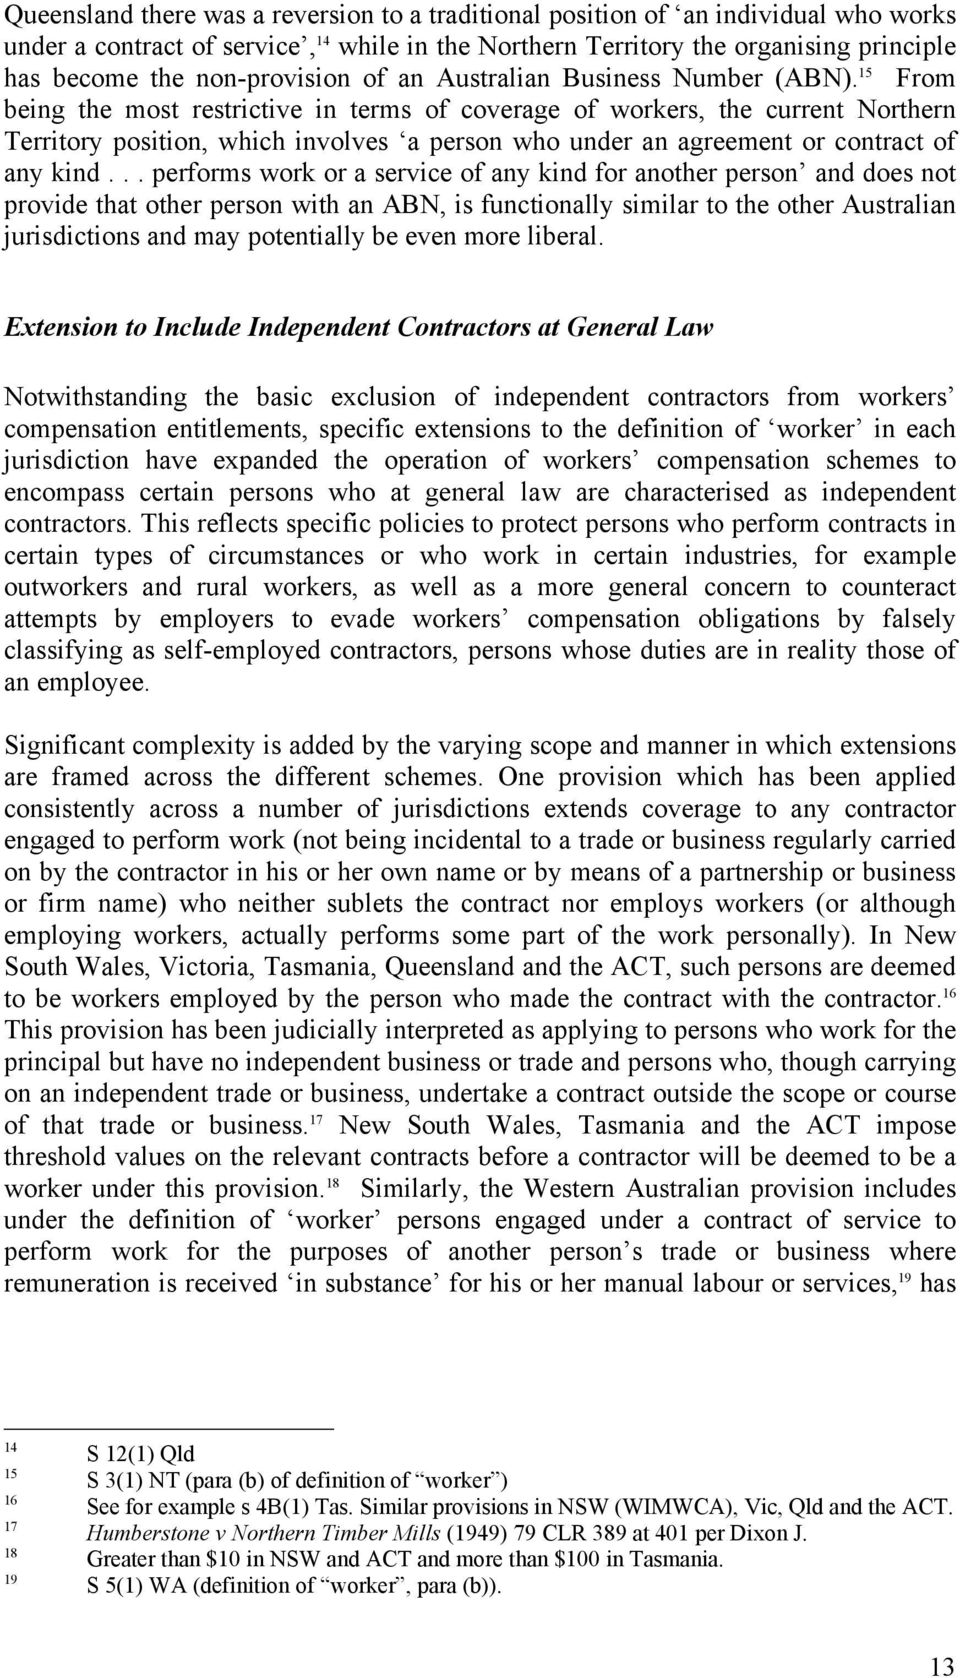 15 From being the most restrictive in terms of coverage of workers, the current Northern Territory position, which involves a person who under an agreement or contract of any kind.